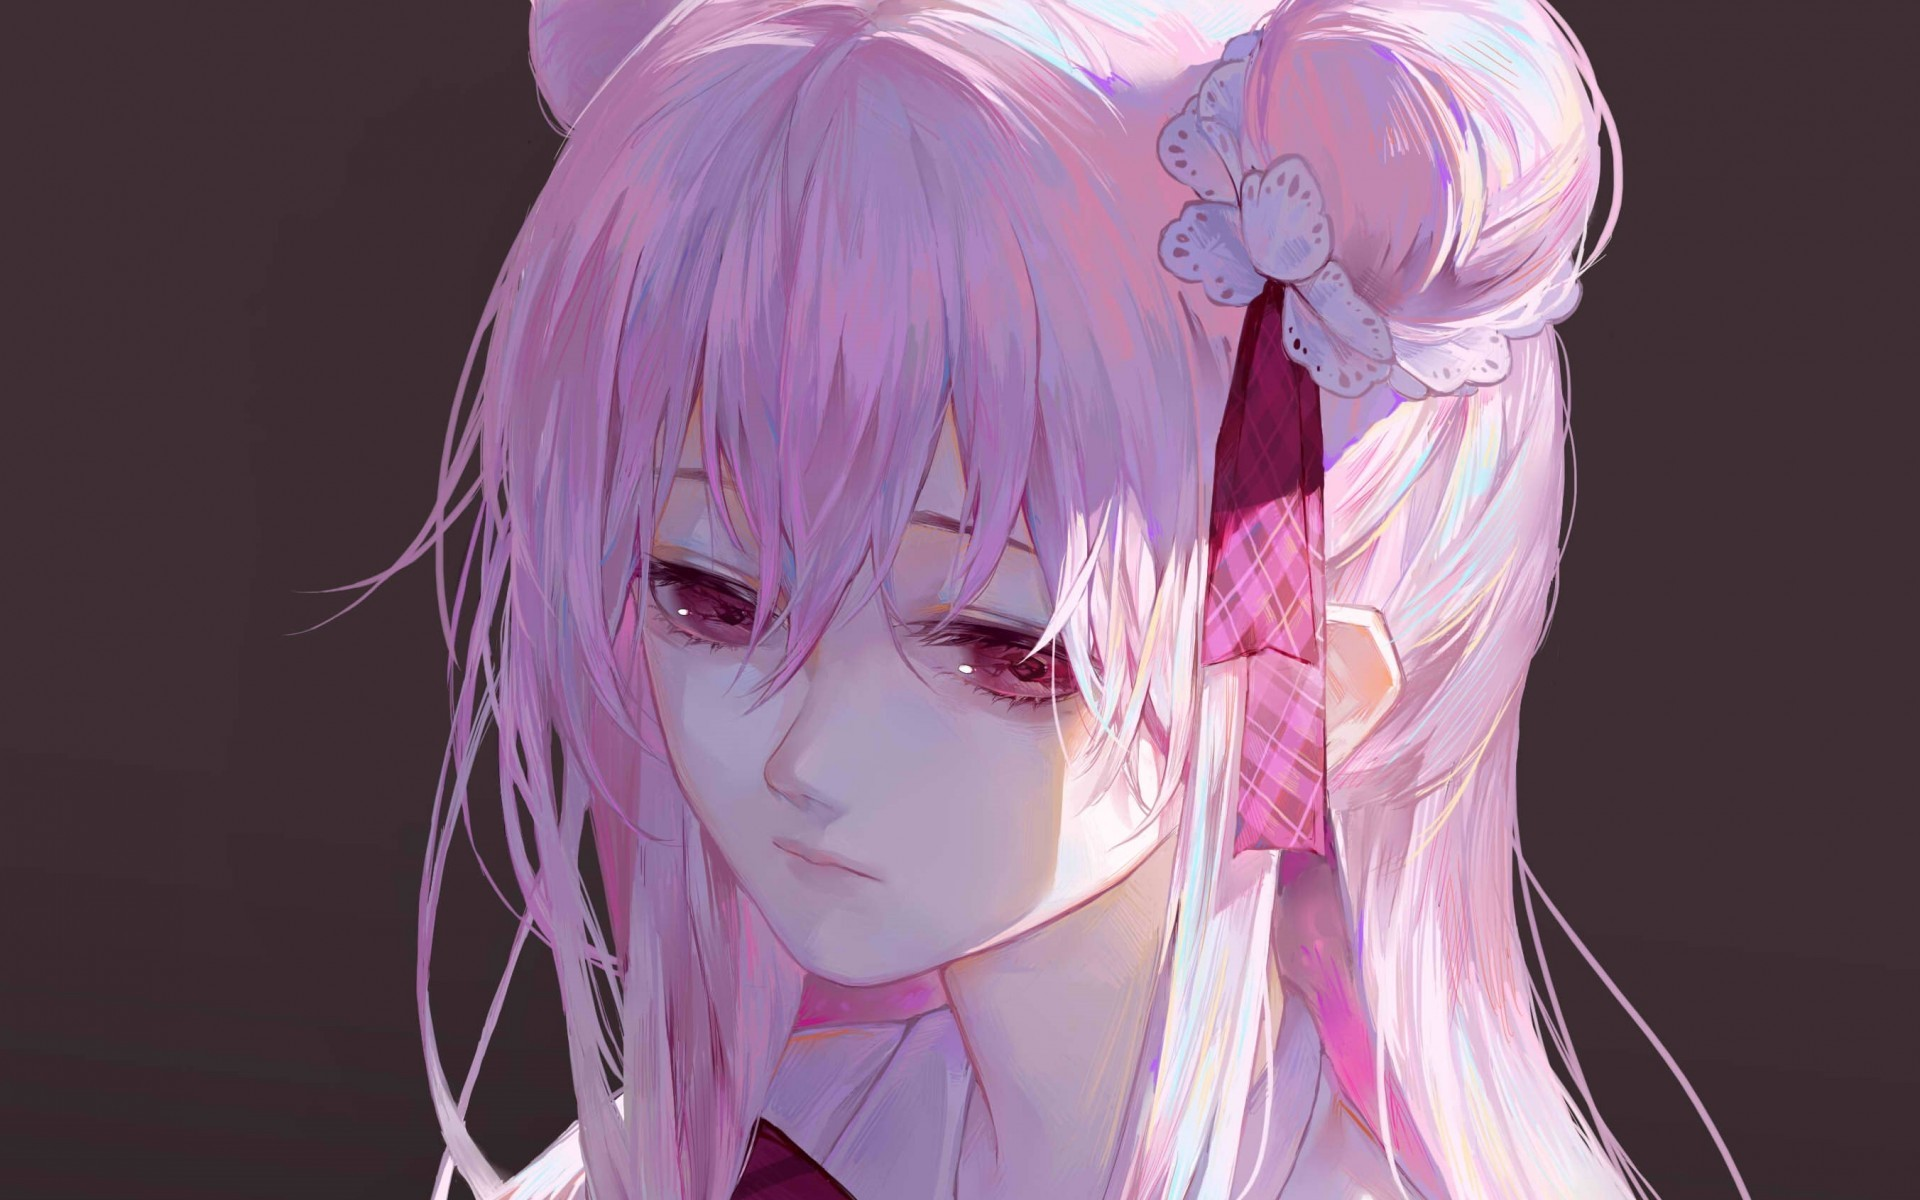 Download 1920x1200 Happy Sugar Life Matsuzaka Satou Pink Hair 1920x1200